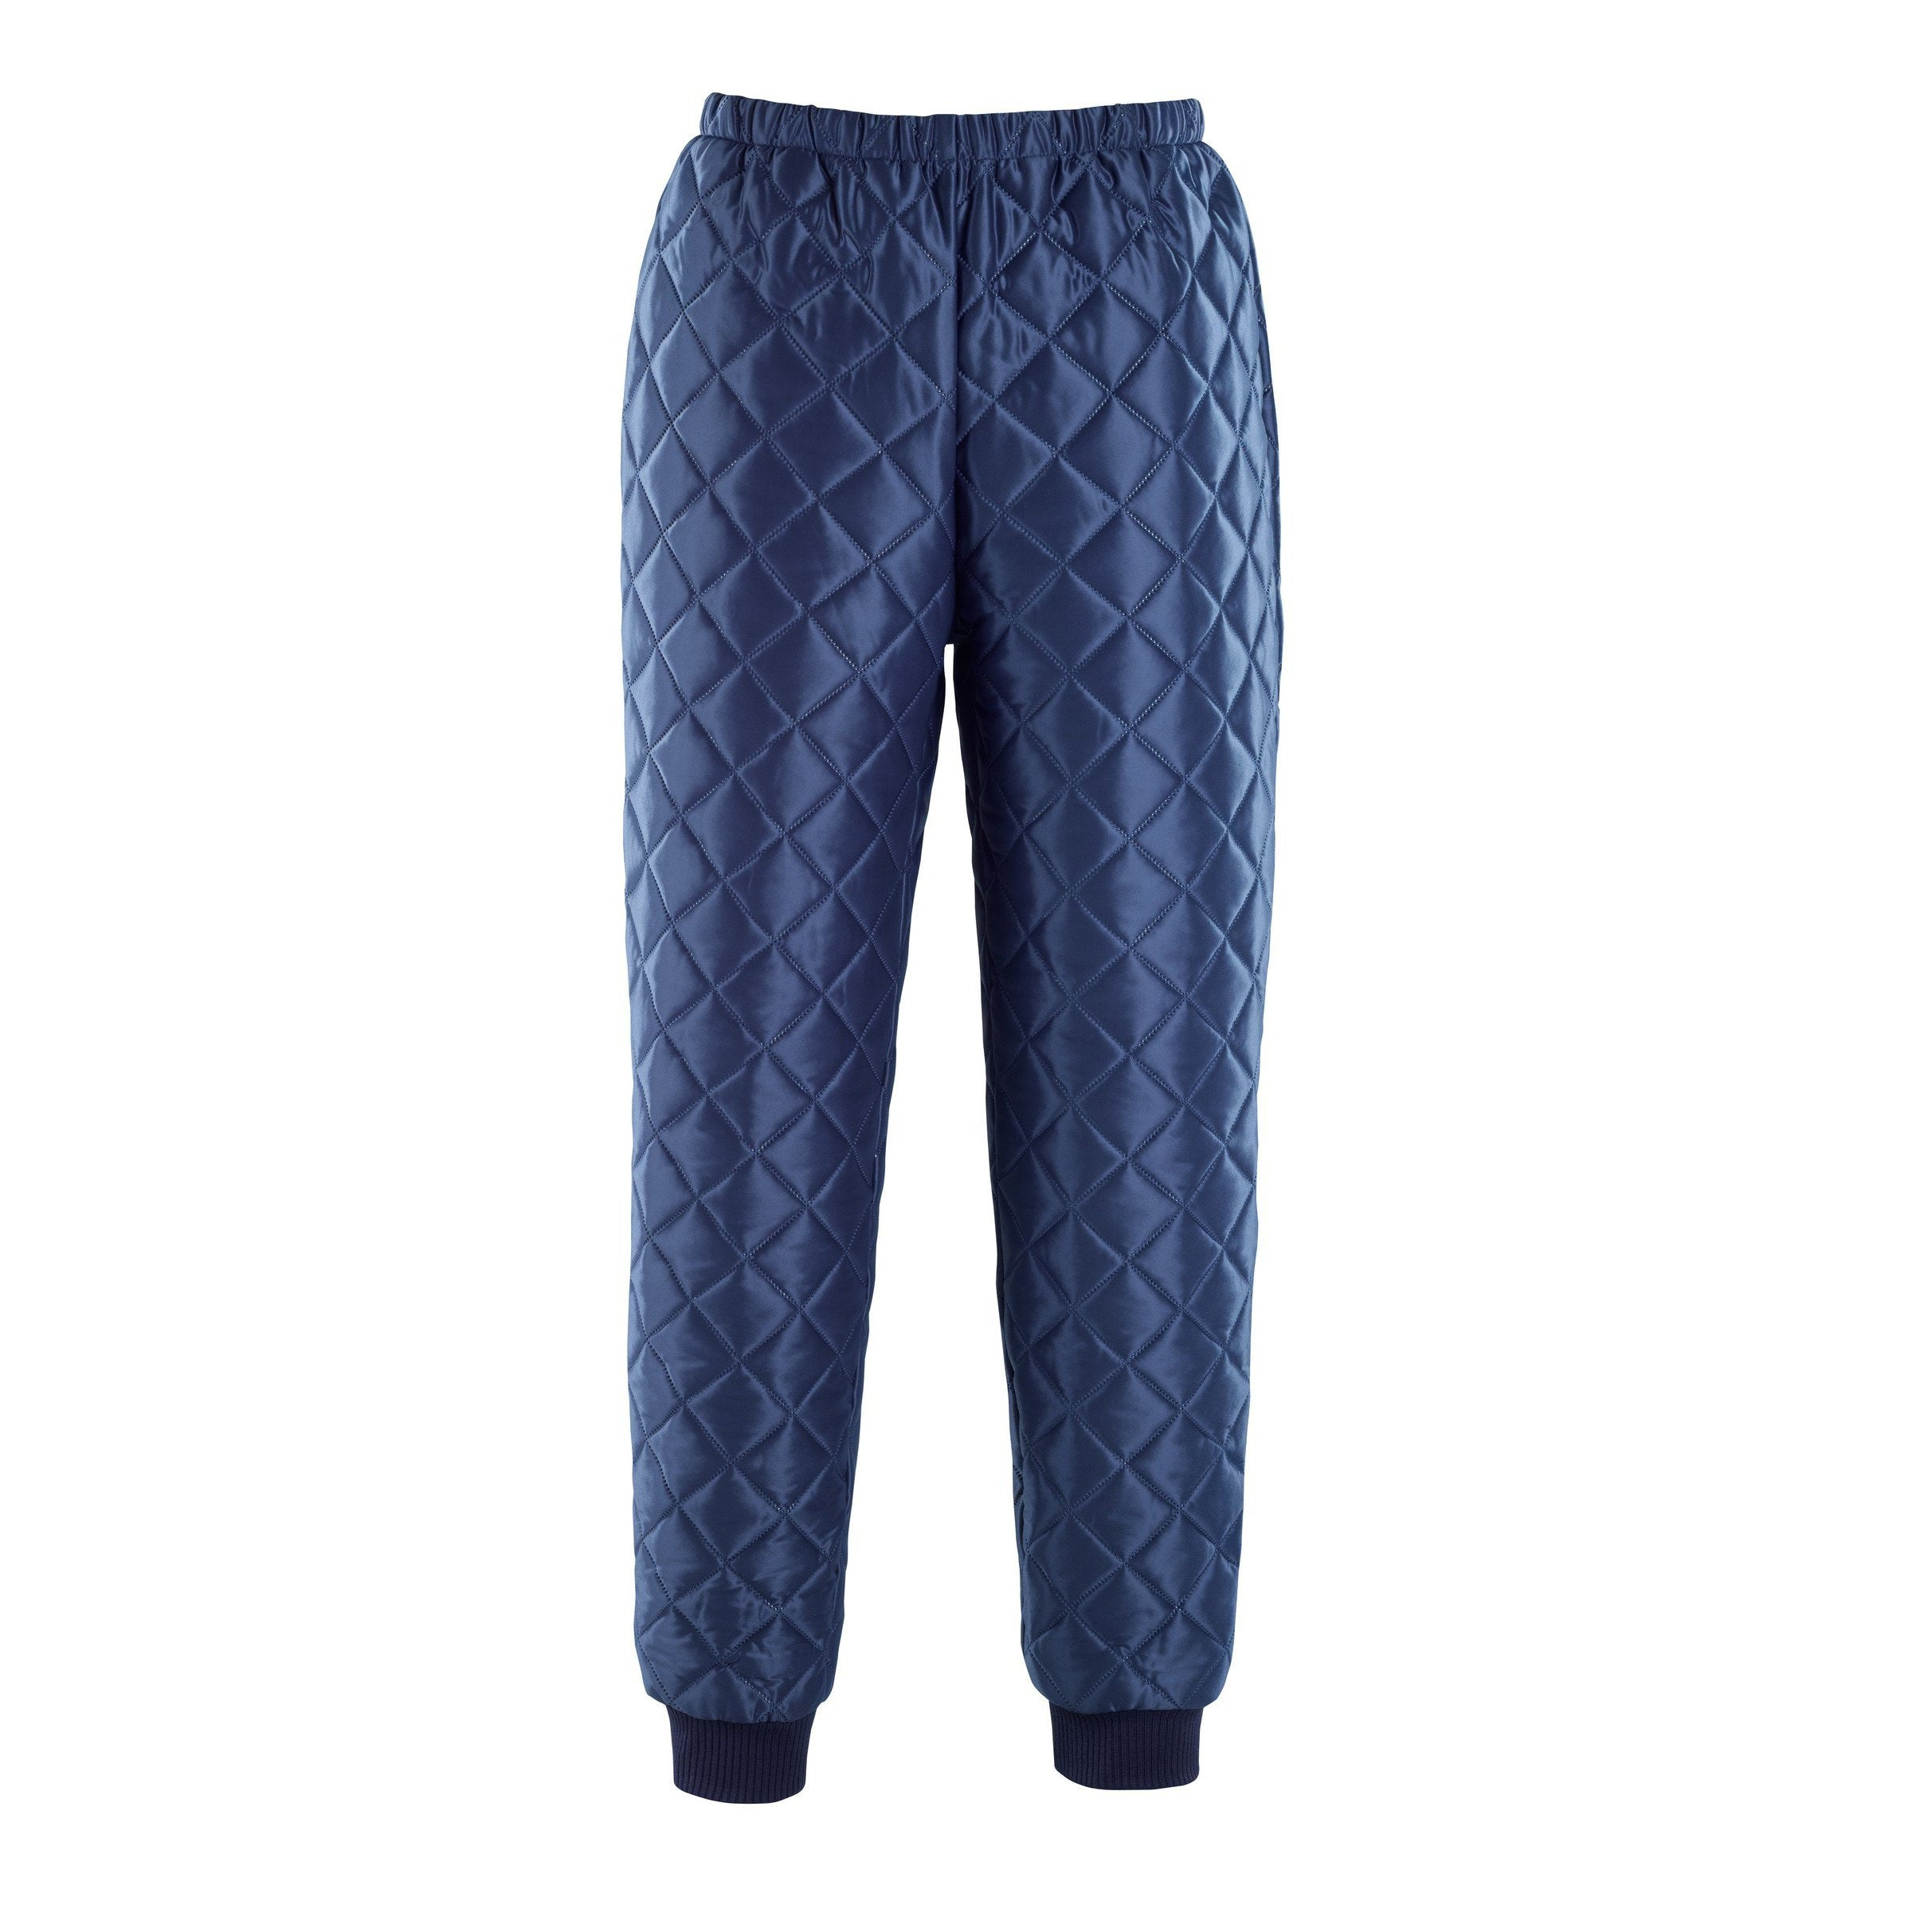 Mascot Huntsville Originals Thermal Trousers